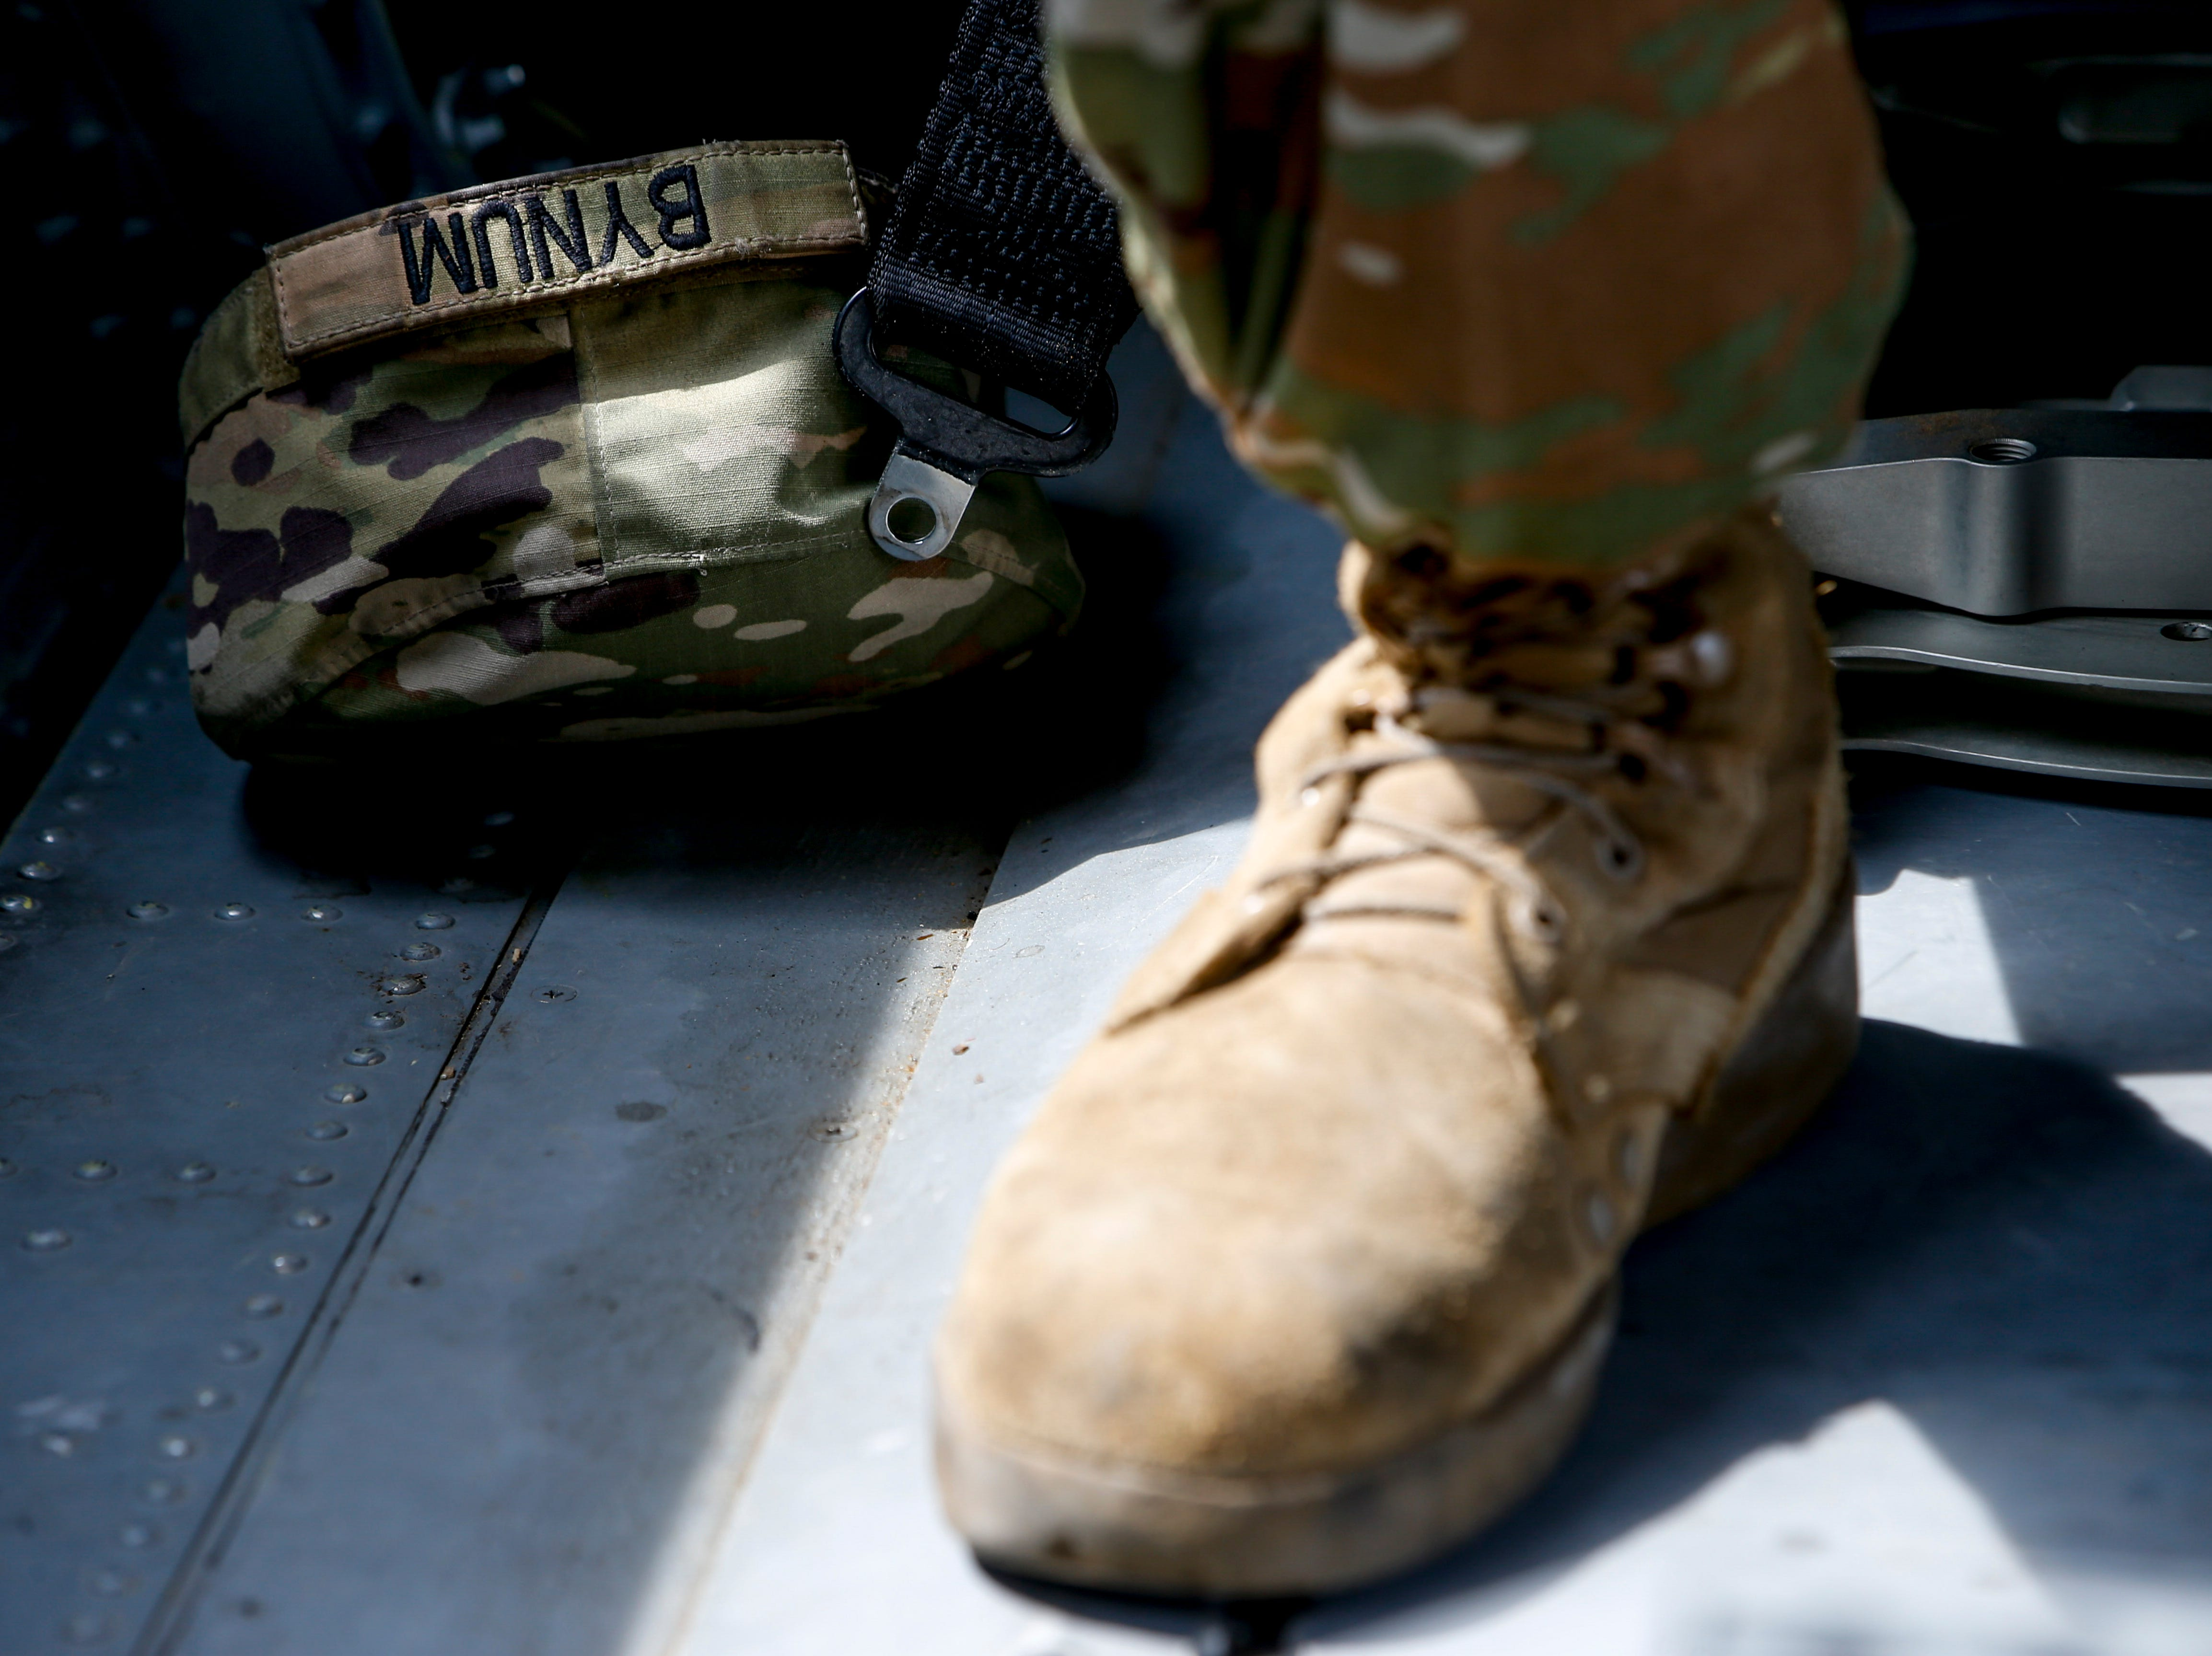 Sgt. Emmanuel Bynum places his hat on the floor of a helicopter as he shares the story of the mission he and Sgt. Armando Yanez were awarded the Silver Star at Campbell Army Airfield in Fort Campbell, KY., on Wednesday, May 1, 2019.